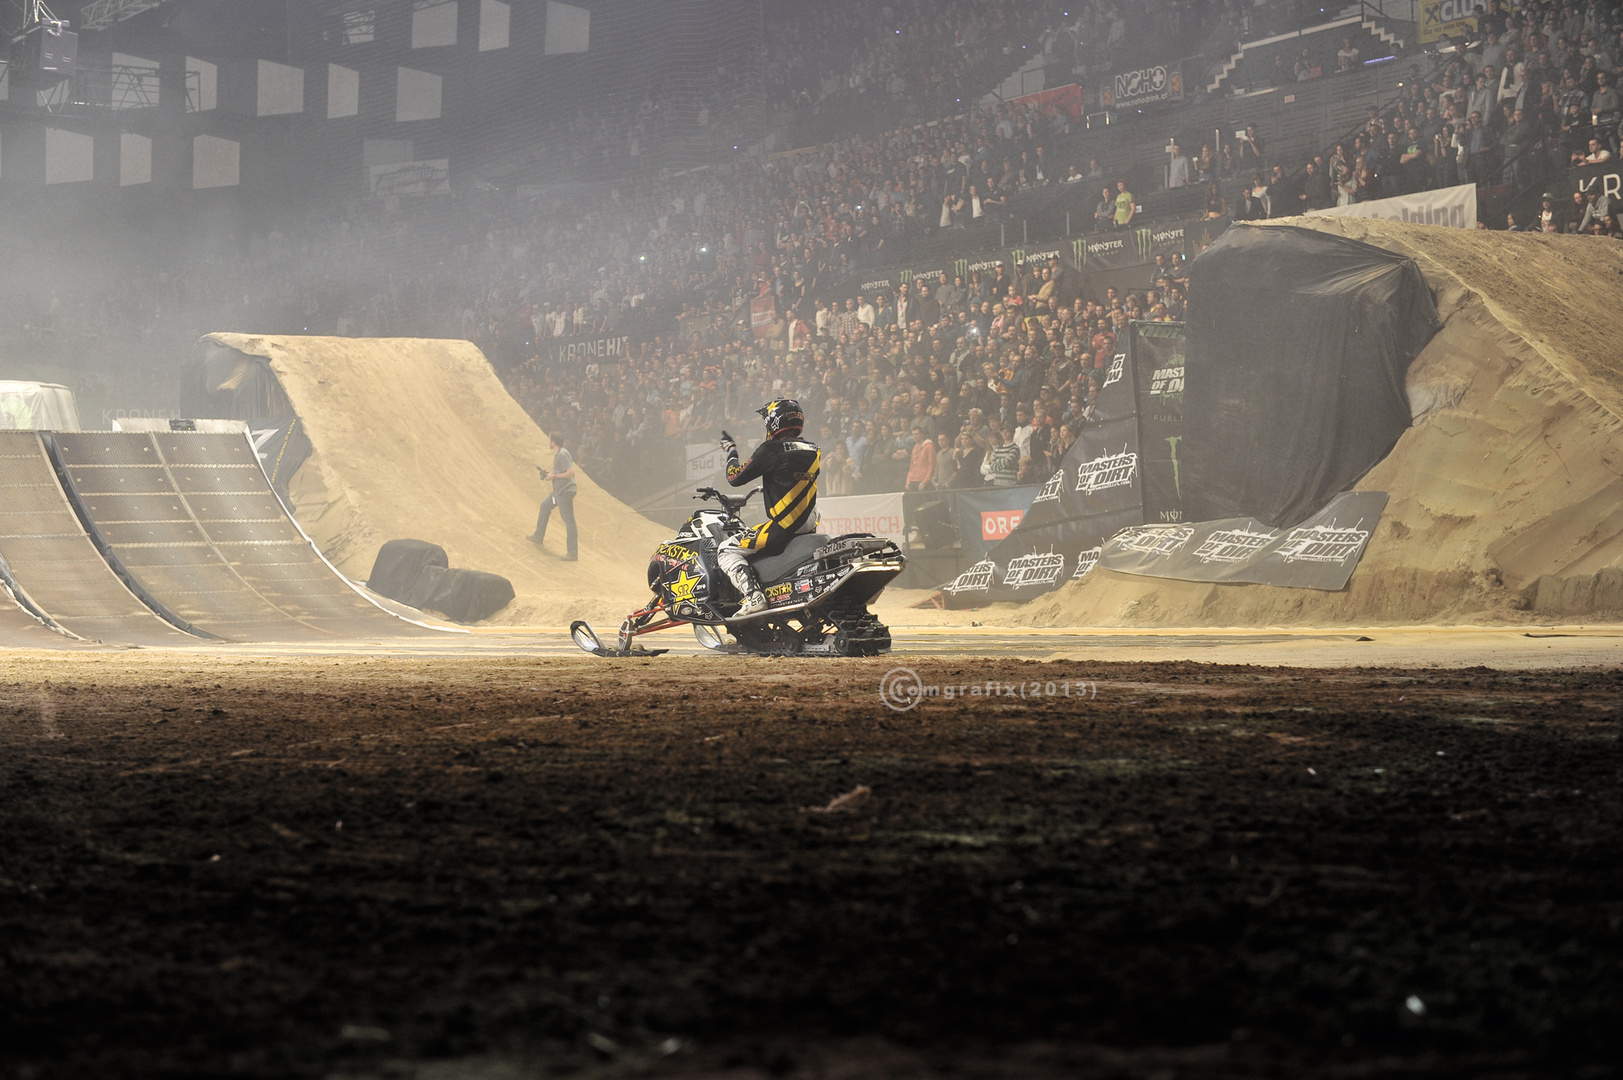 FMX-Snowmobile at masters of dirt 2013